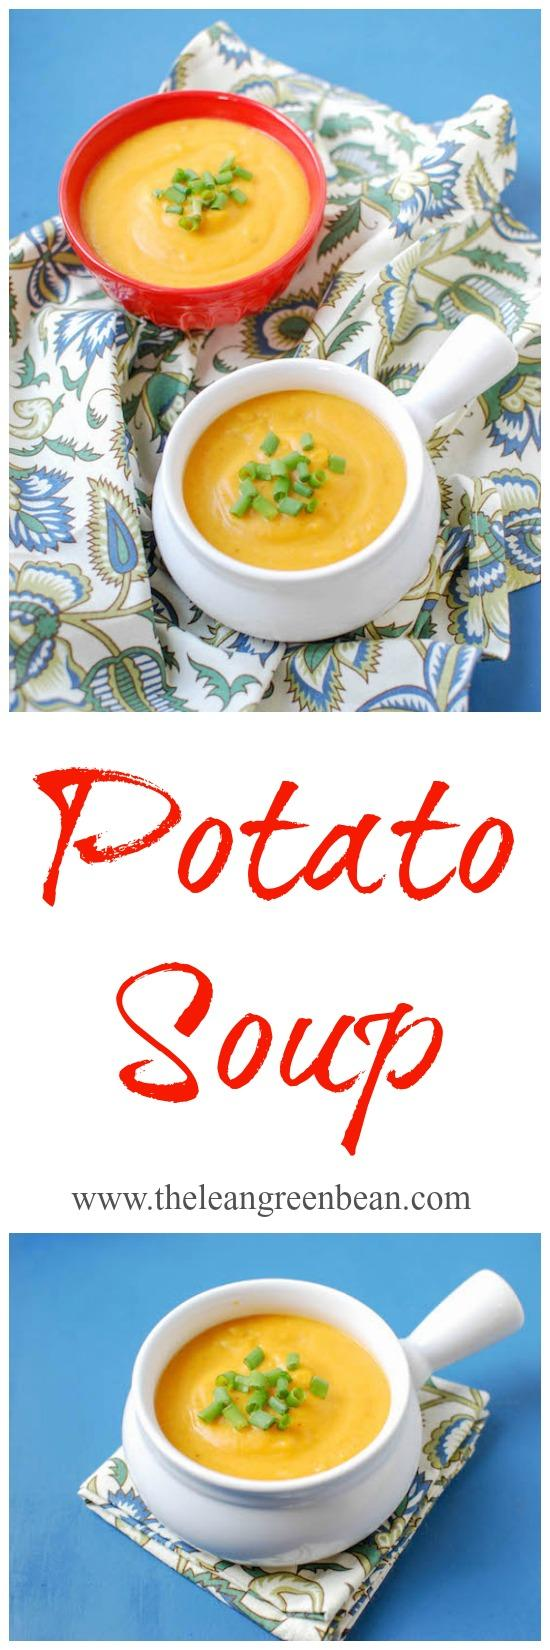 This potato soup is made with two kinds of potatoes and makes a great, nutritious option for lunch or dinner!